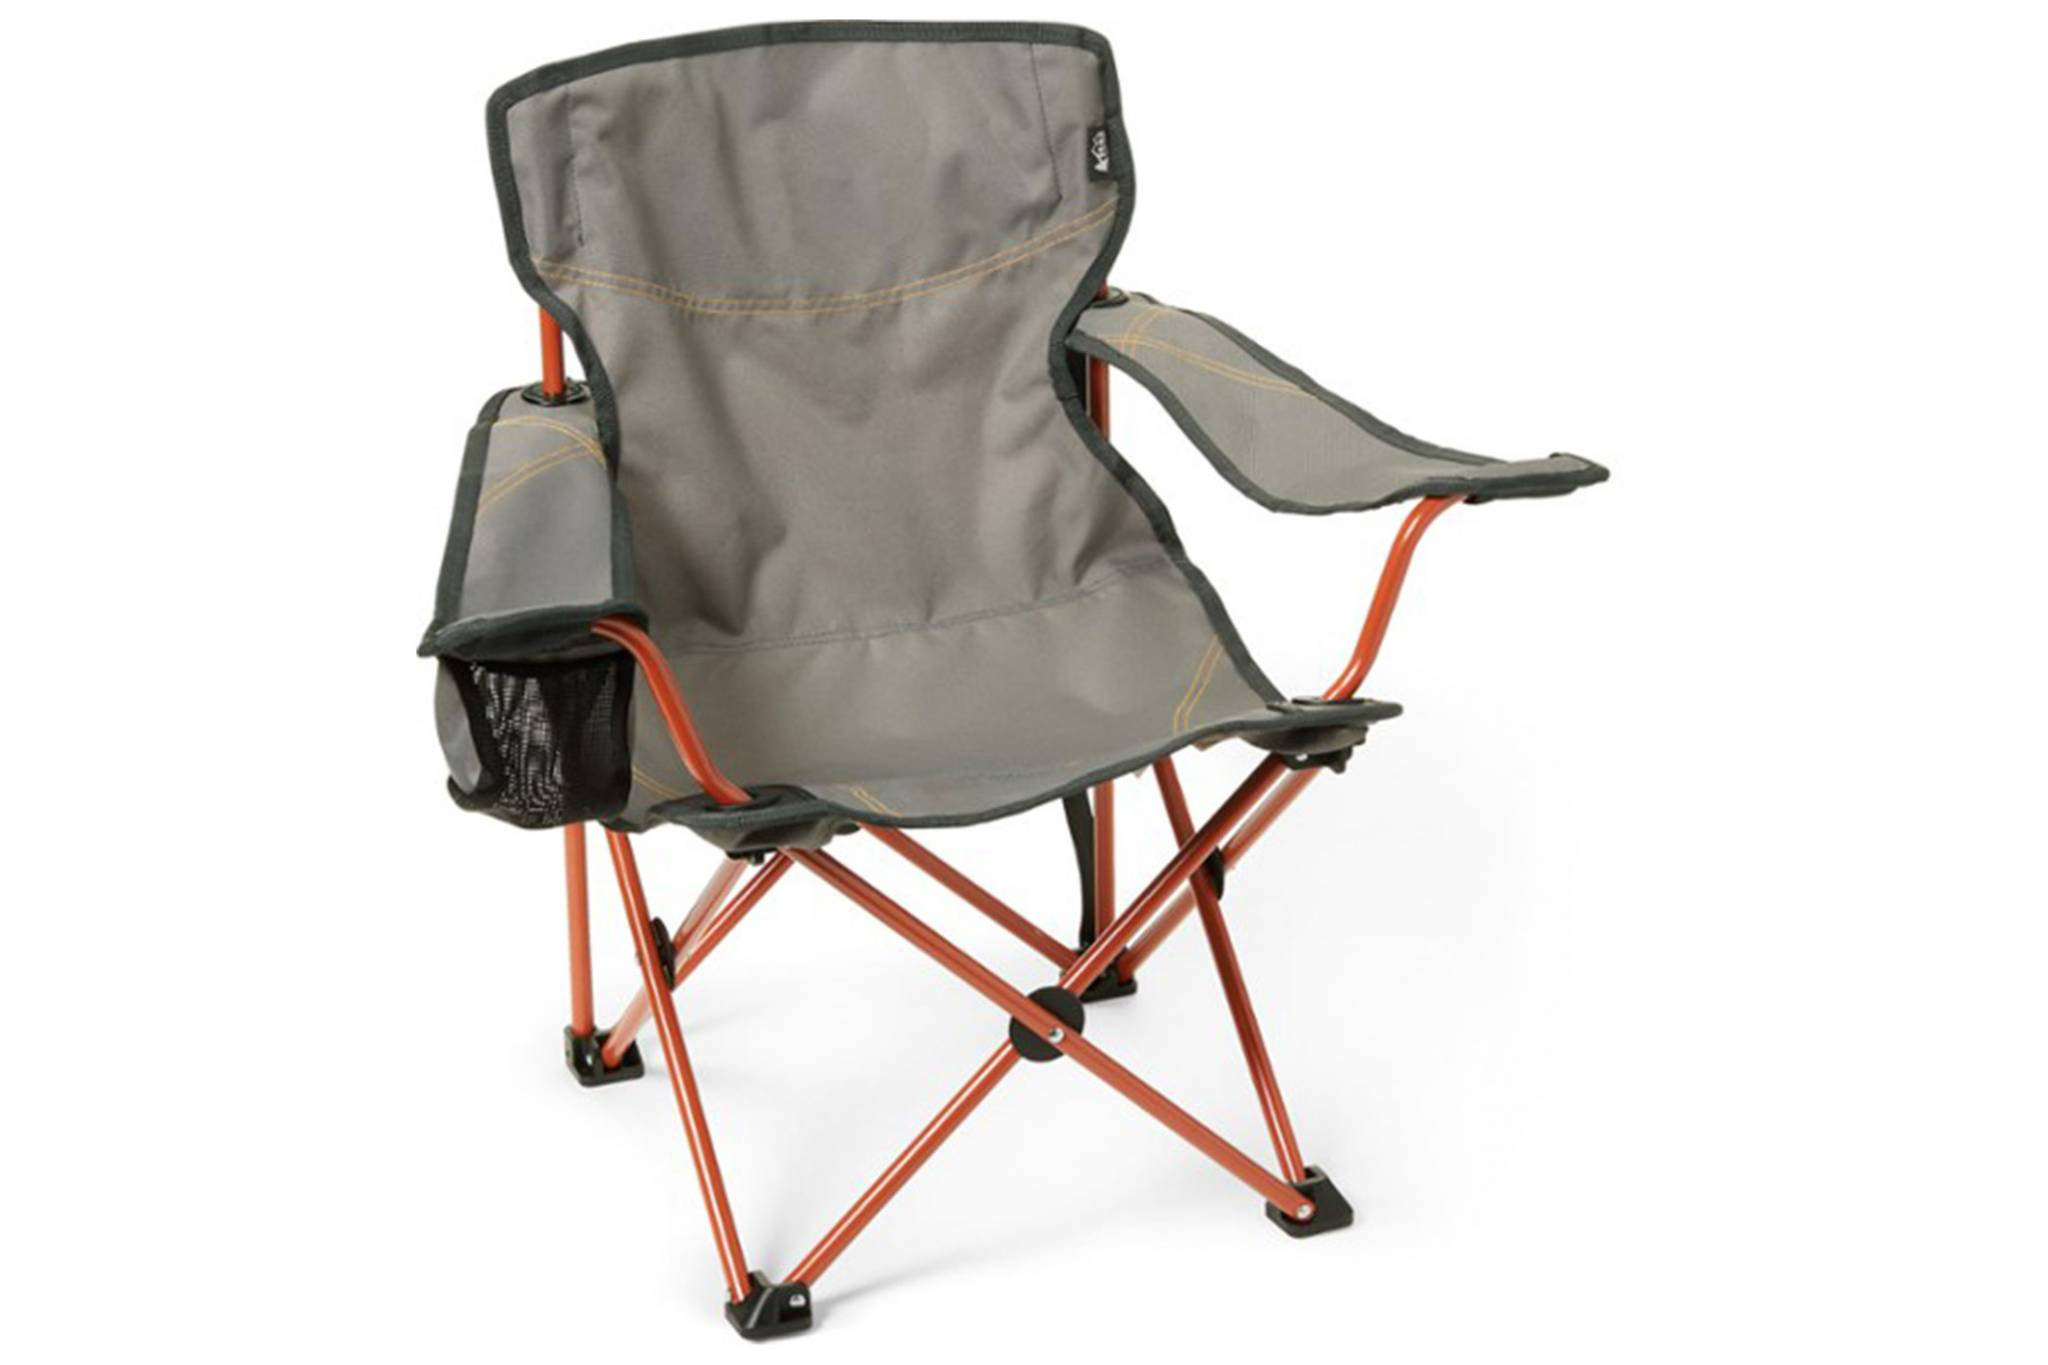 REI Camp Chair for Kids